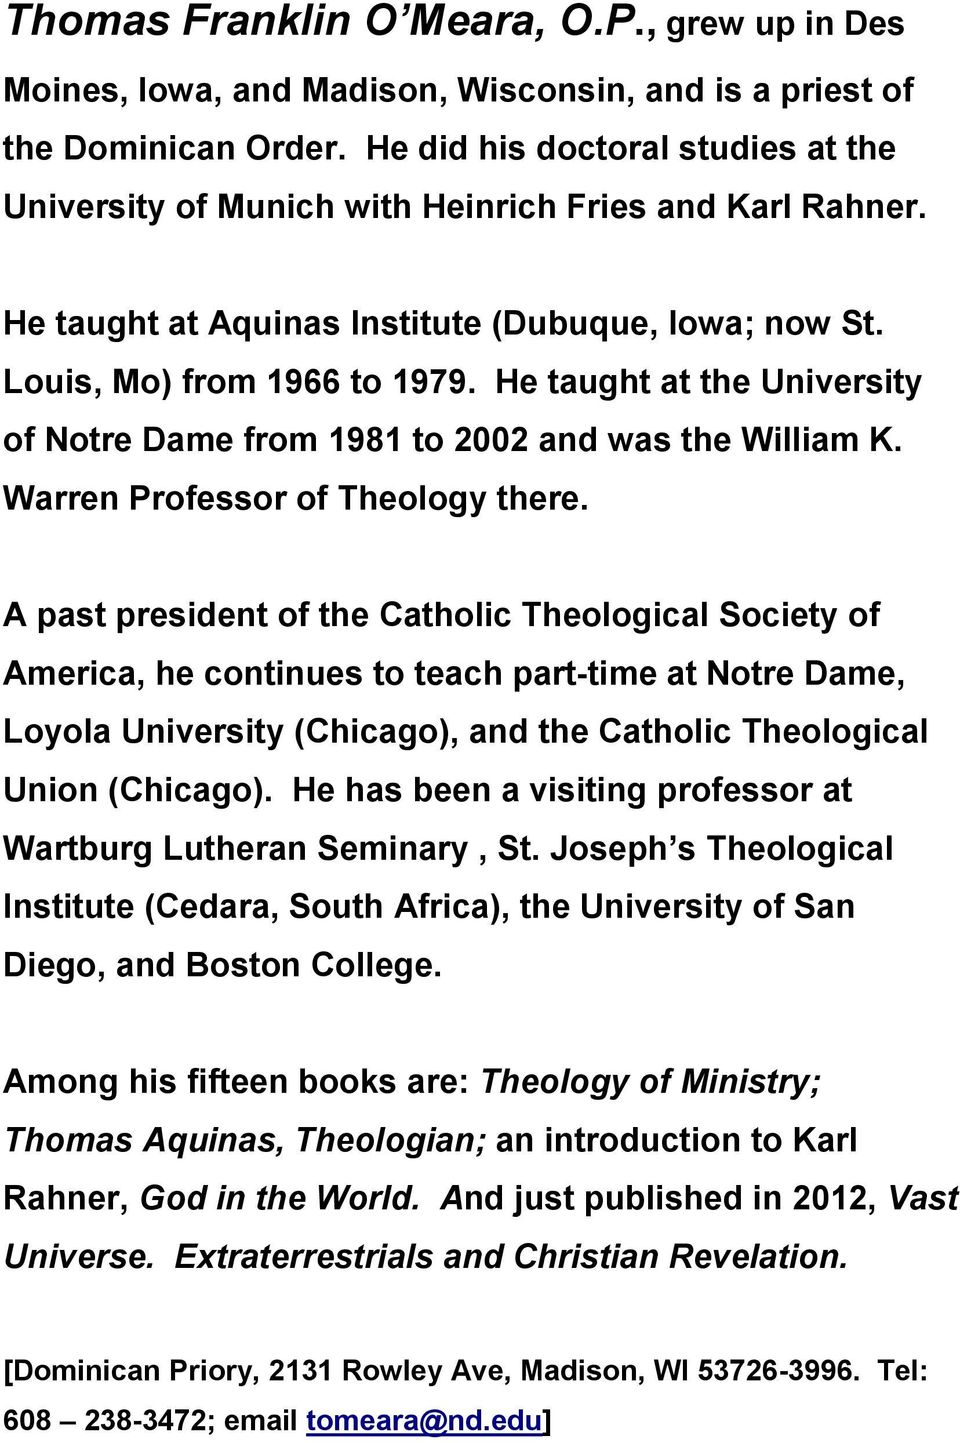 He taught at the University of Notre Dame from 1981 to 2002 and was the William K. Warren Professor of Theology there.